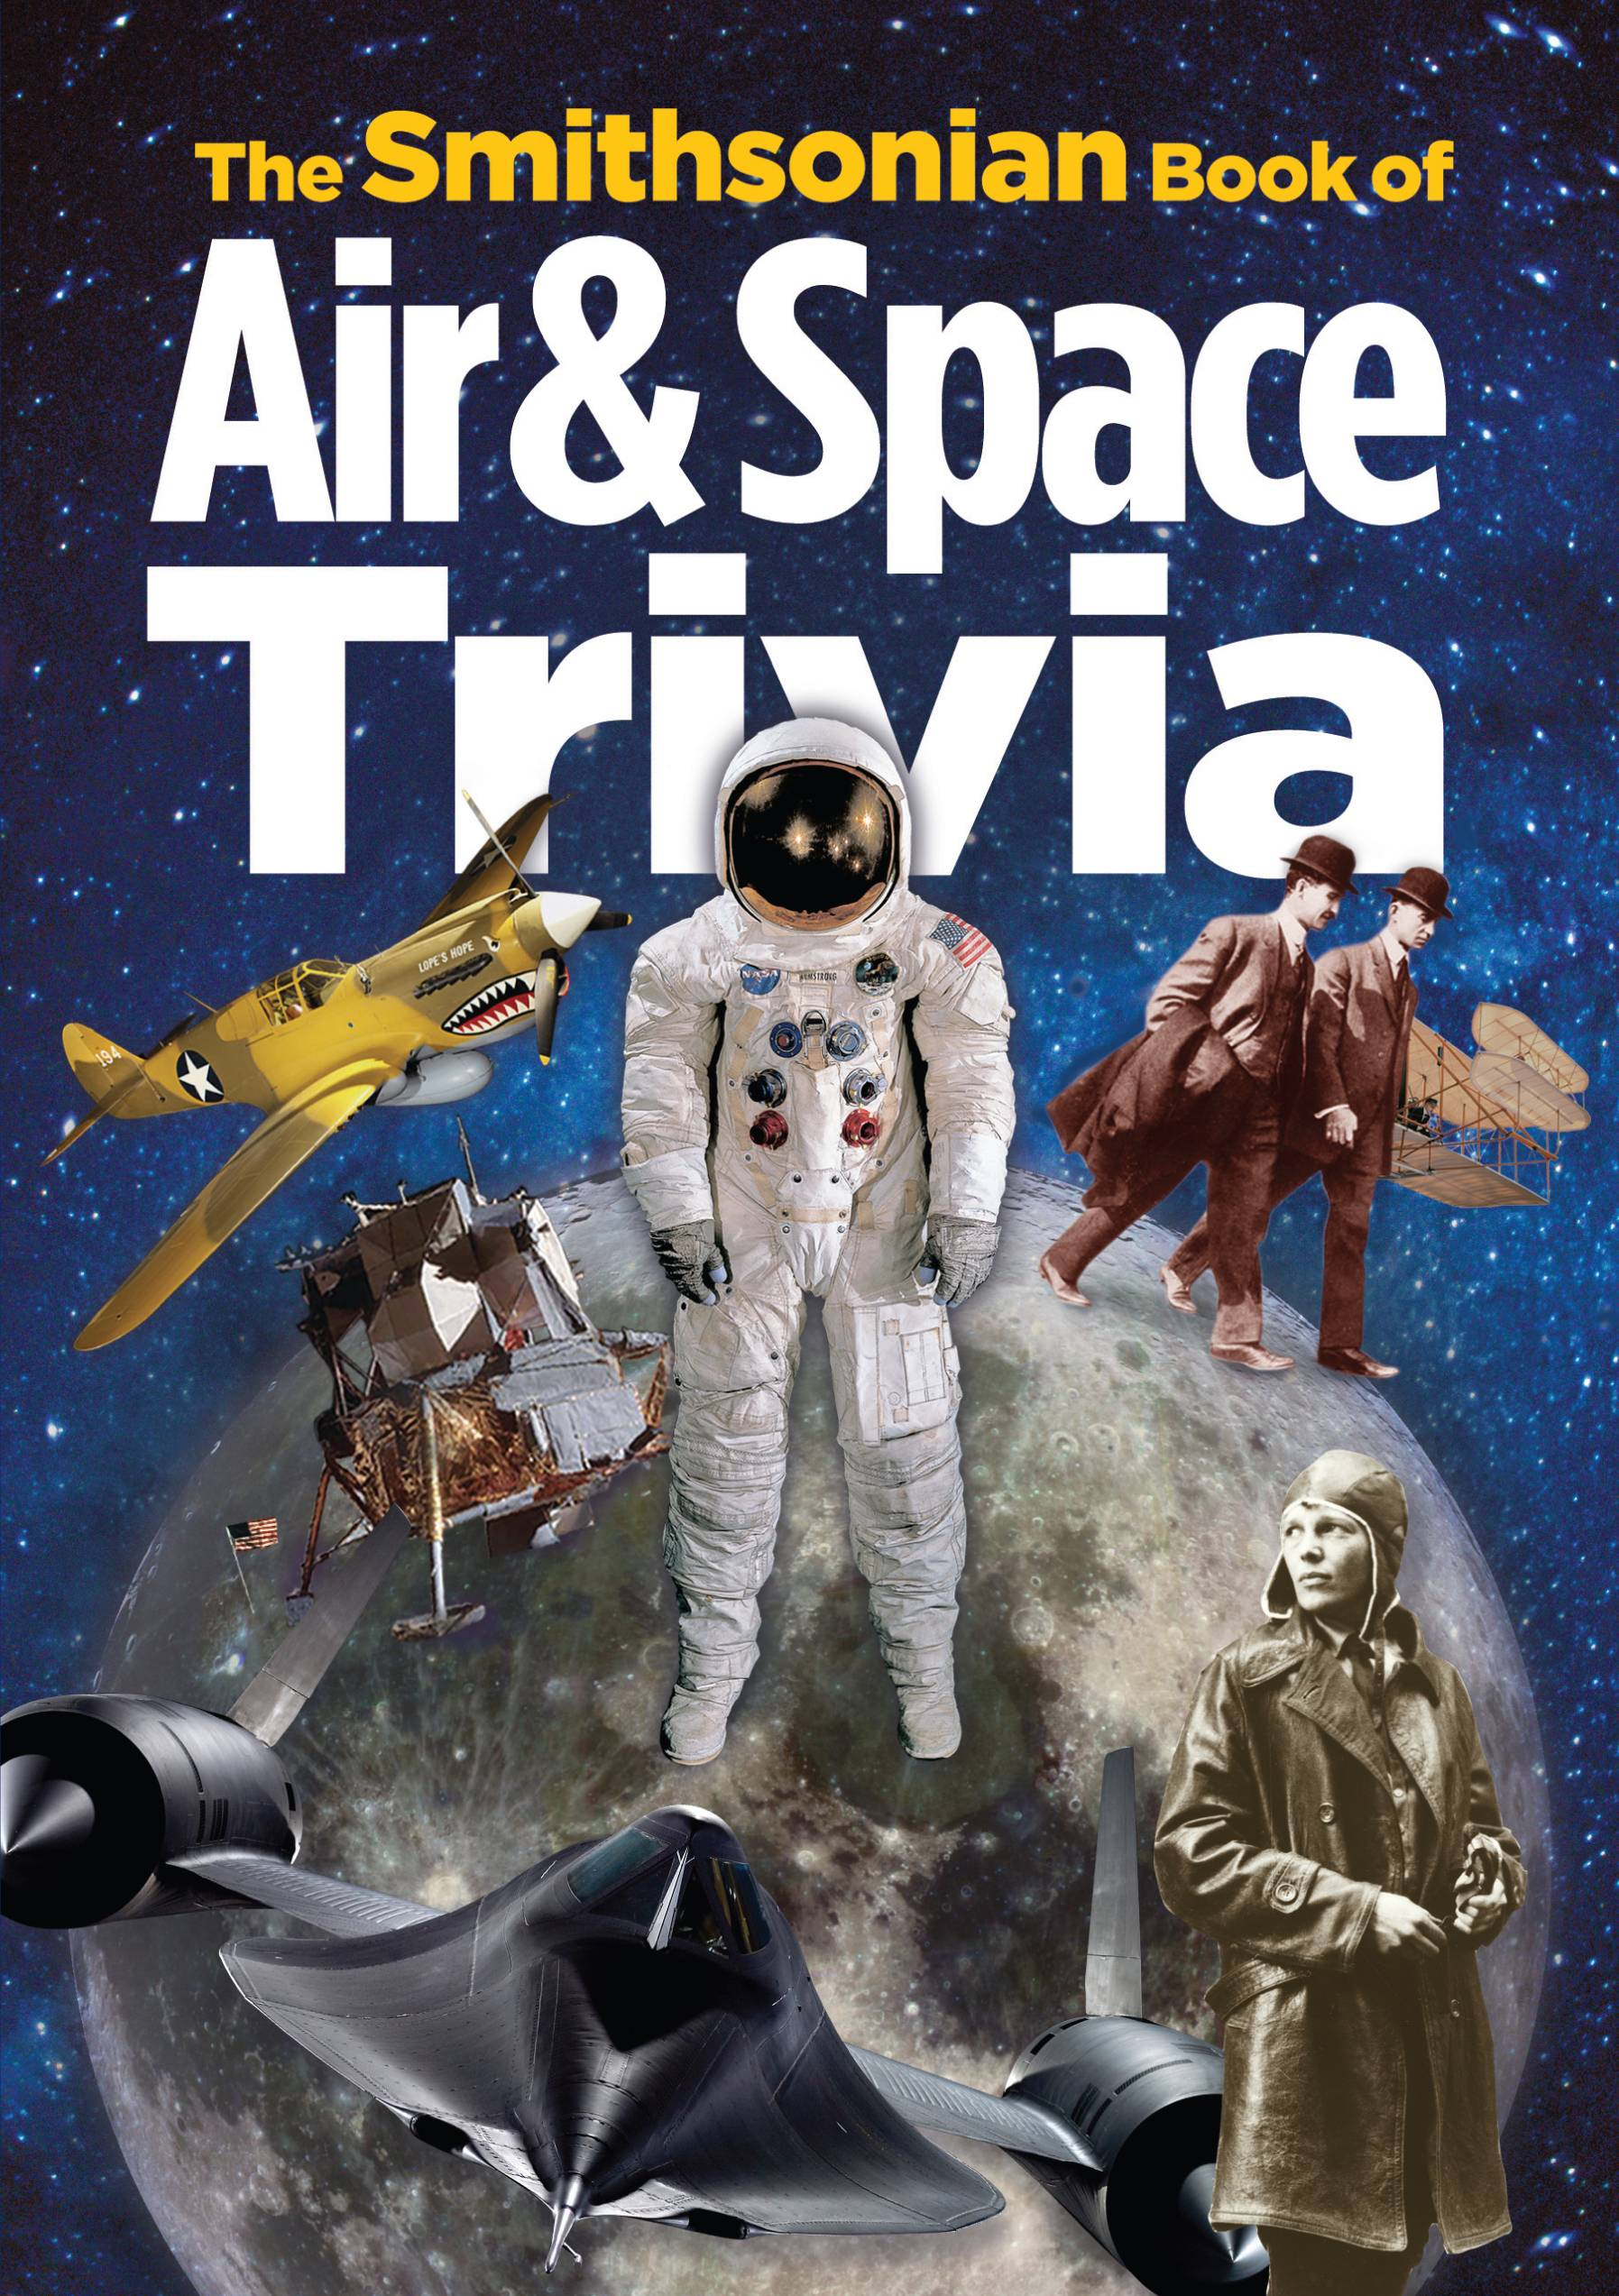 """The Smithsonian Book of Air & Space Trivia"", edited by Amy Pastan, is filled with all sorts of aviation nuggets."